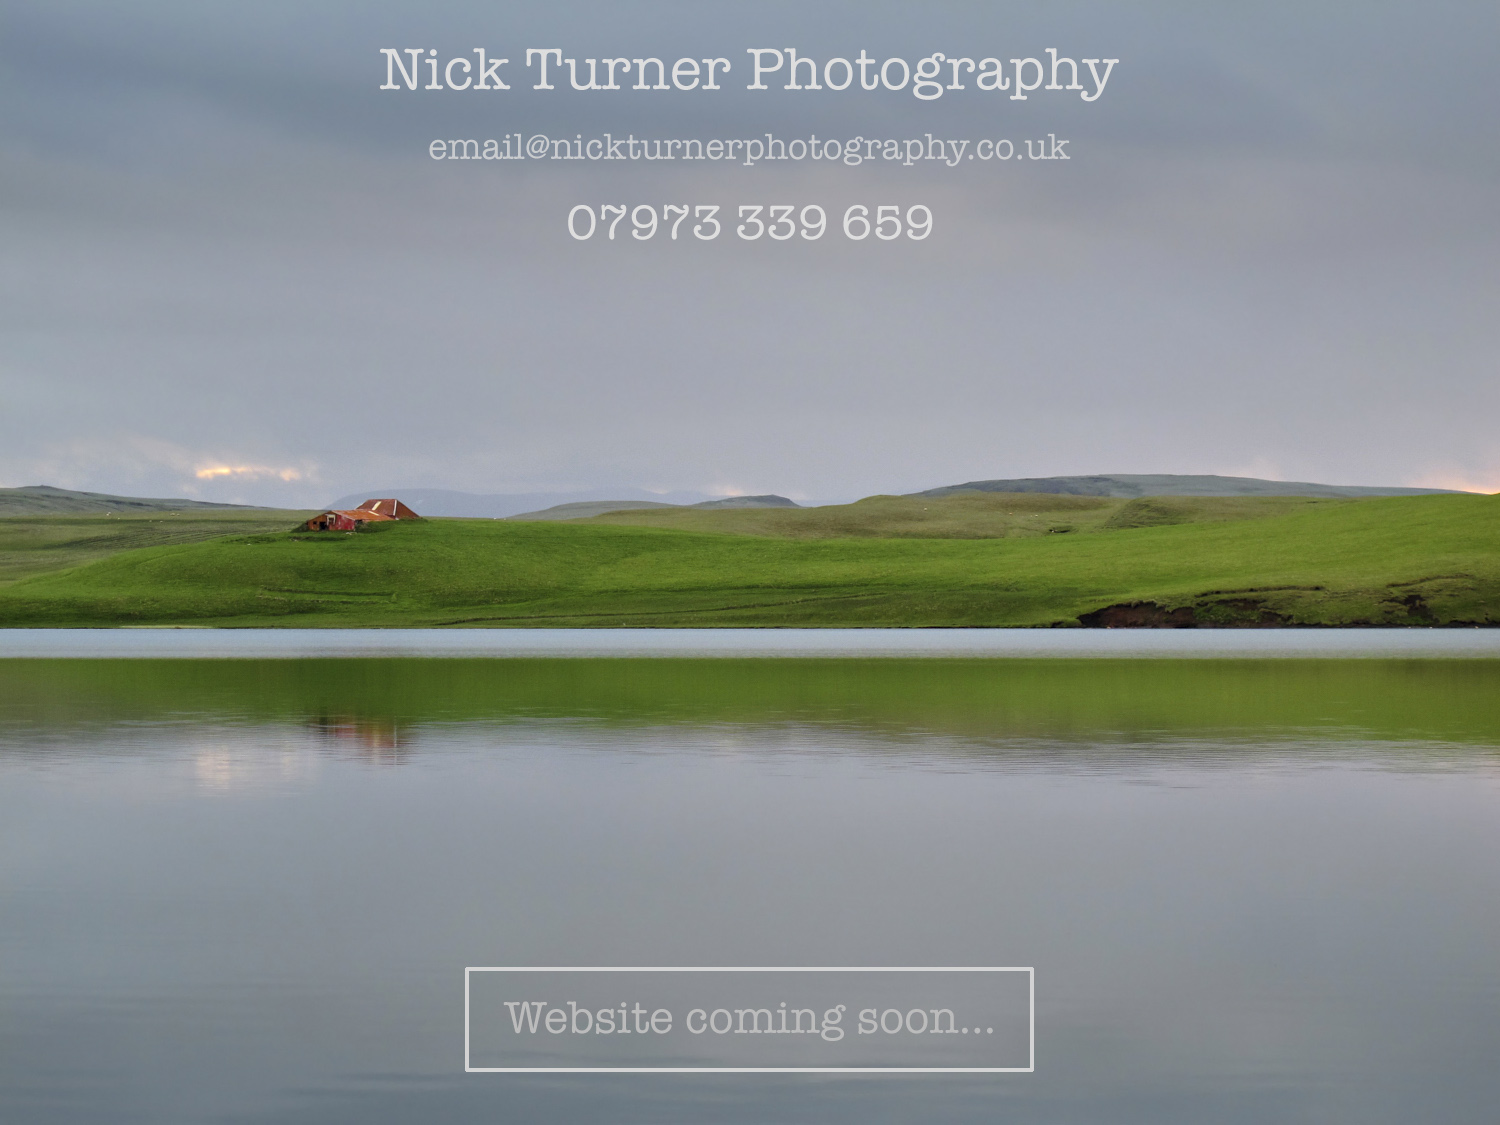 Nick Turner Photography